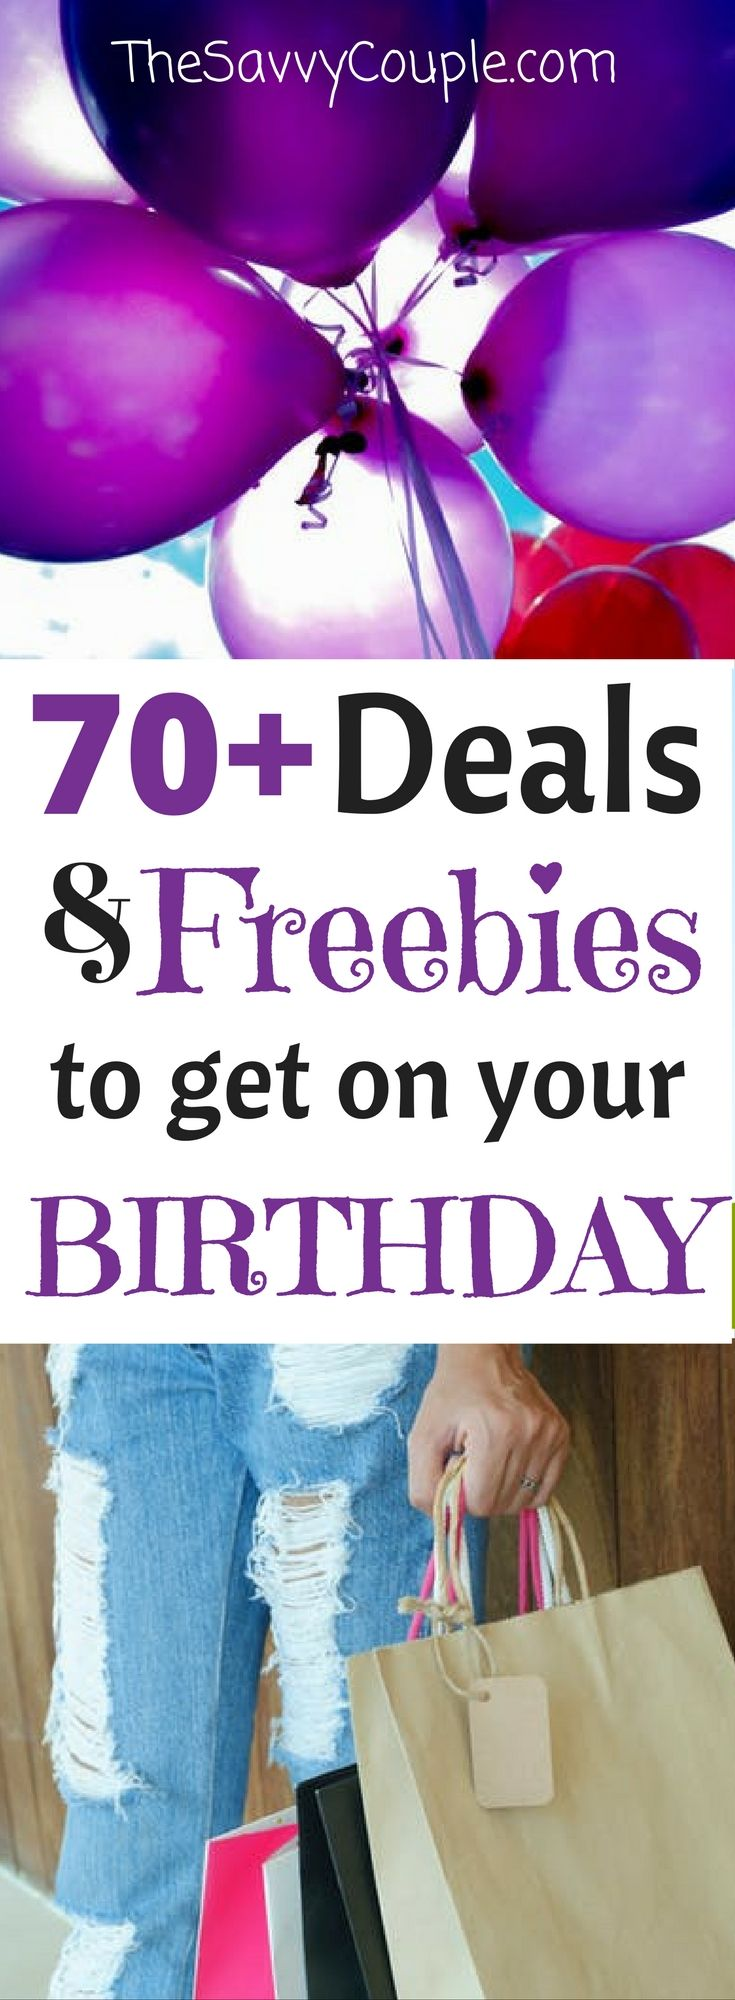 Hip-hip hooray, it's your birthday! Treat yourself to one (or more) of these 70+ birthday freebies. Check out this huge list of free birthday stuff from restaurants, retailers, and entertainment. You deserve to spoil yourself with these freebies! Birthday freebies   Free Birthday   Ultimate List   Save Money   The Savvy Couple